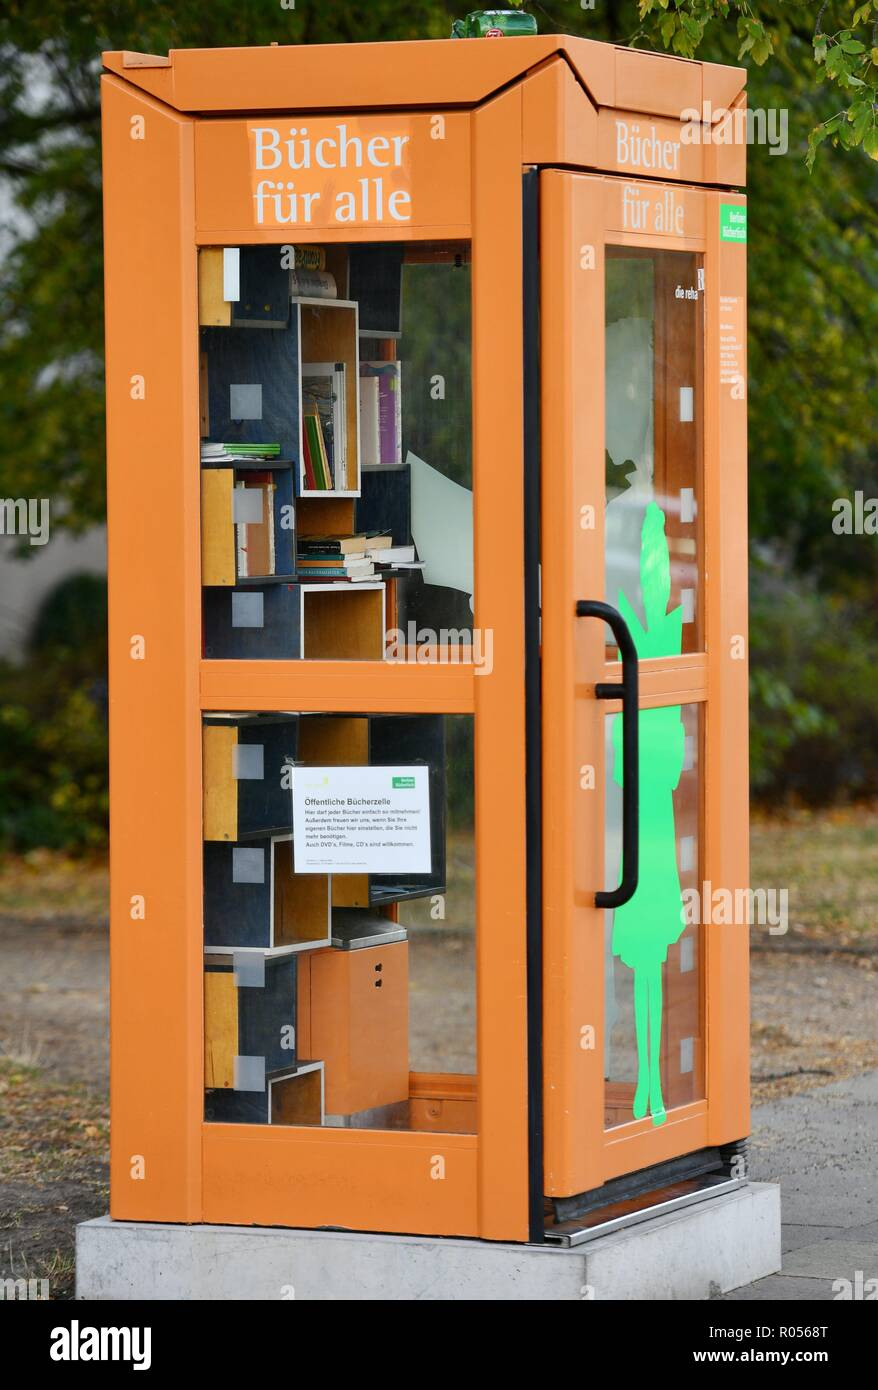 Berlin 24.de A Former Phone Box Was Changed To A Book Box Germany City Of